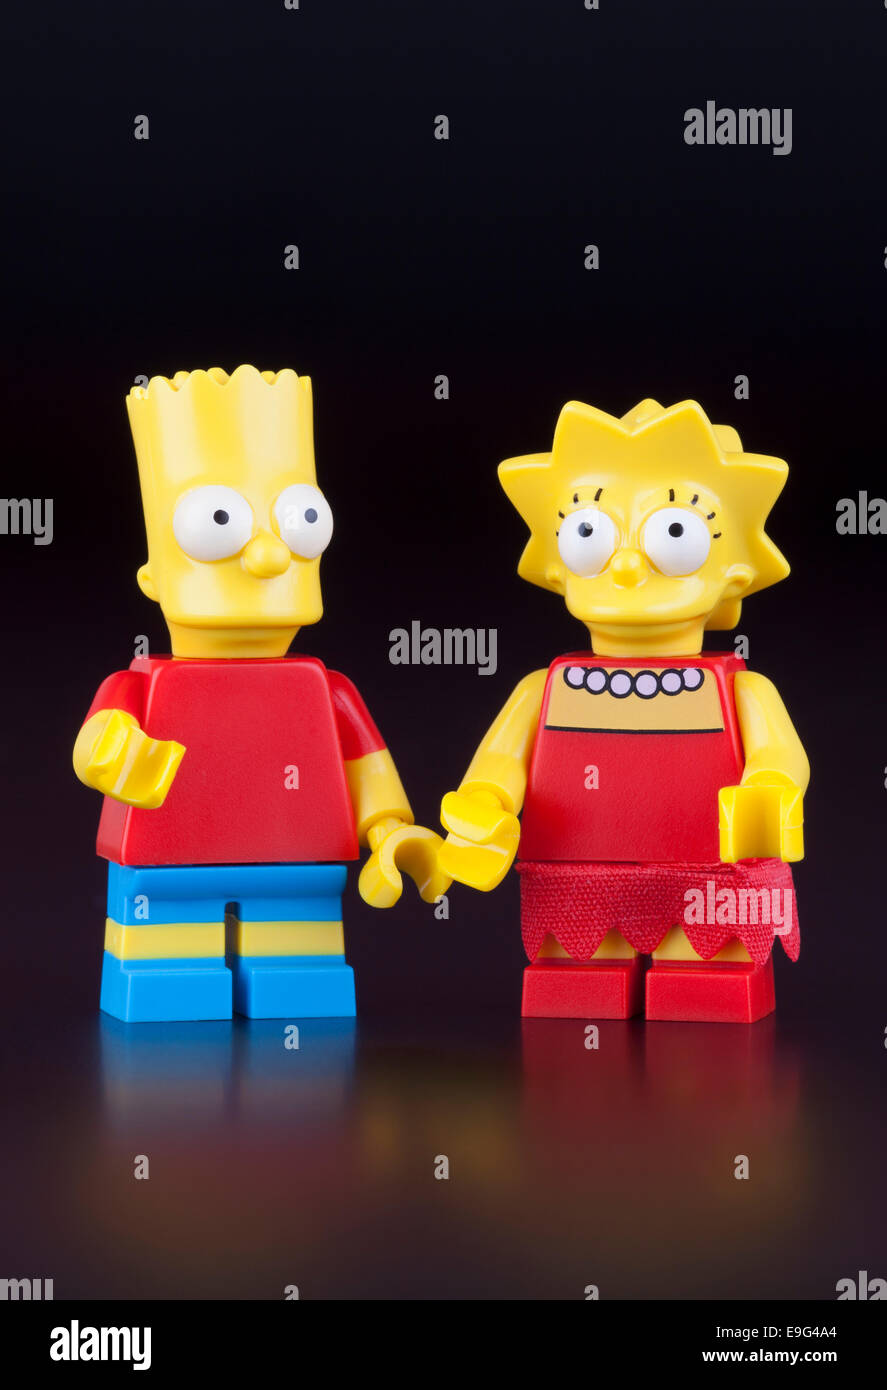 Tambov, Russian Federation - April 30, 2014 Lego Bart and Lisa Simpsons minifigures on black background. Studio - Stock Image